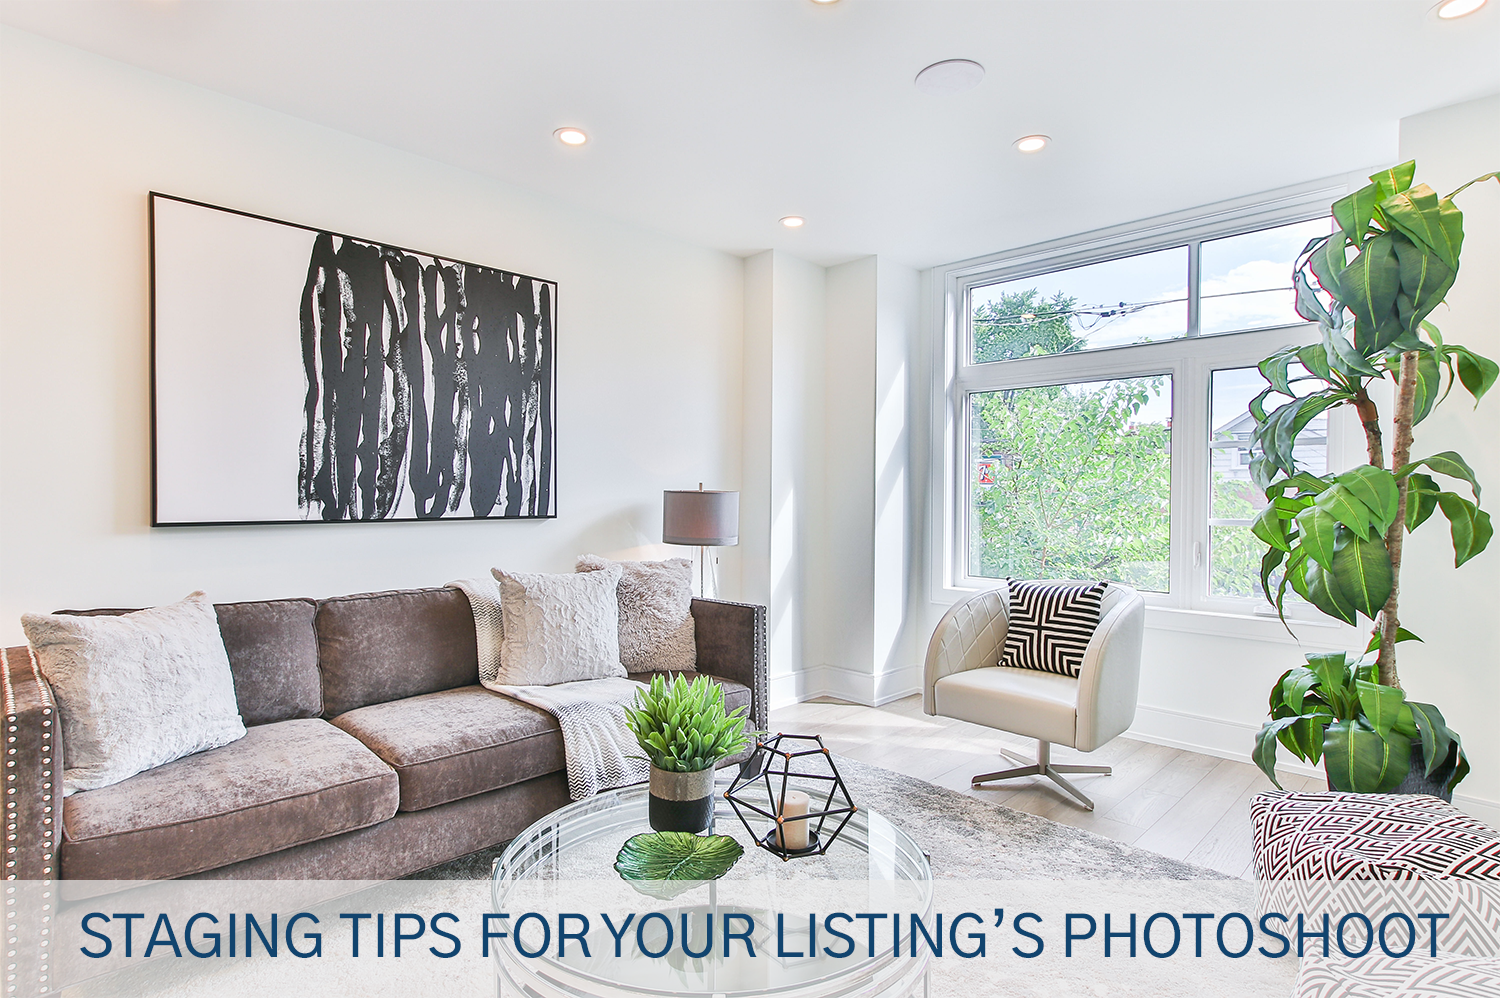 A living room utilizing the staging tips Exclusive Edge Media provided.